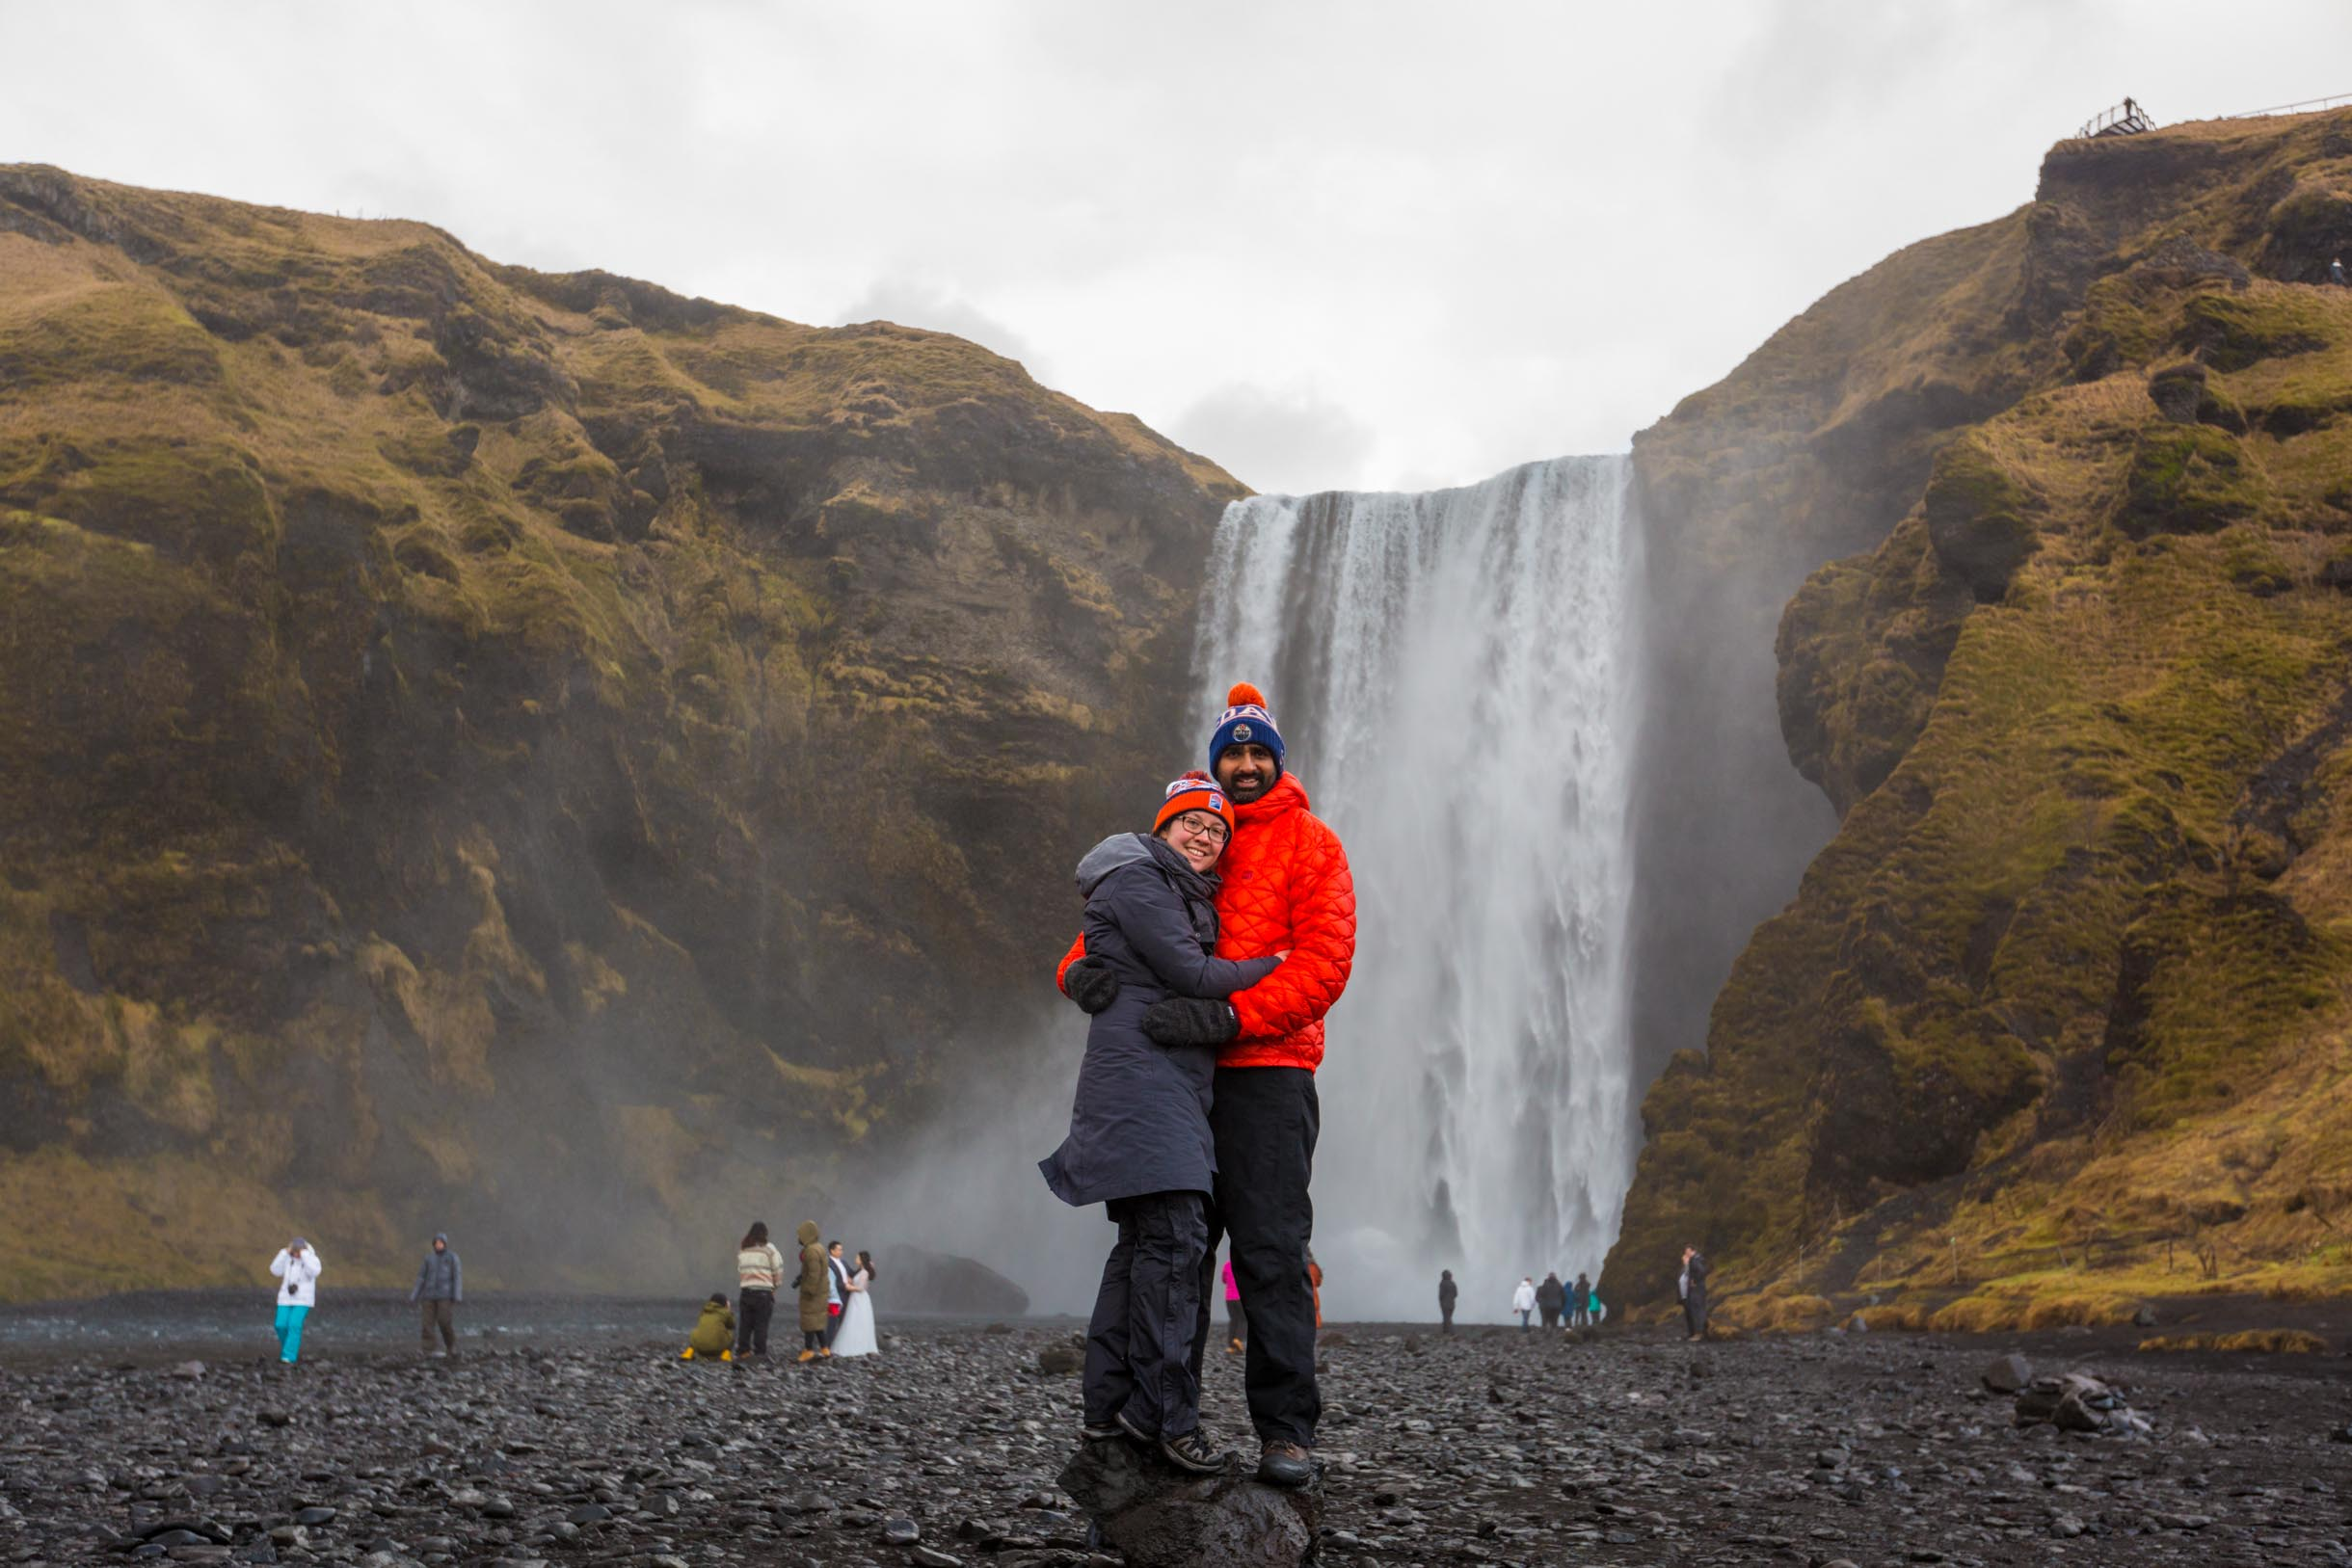 A picture of the waterfall in iceland skogafoss while we were checking out the Southern Iceland Waterfalls